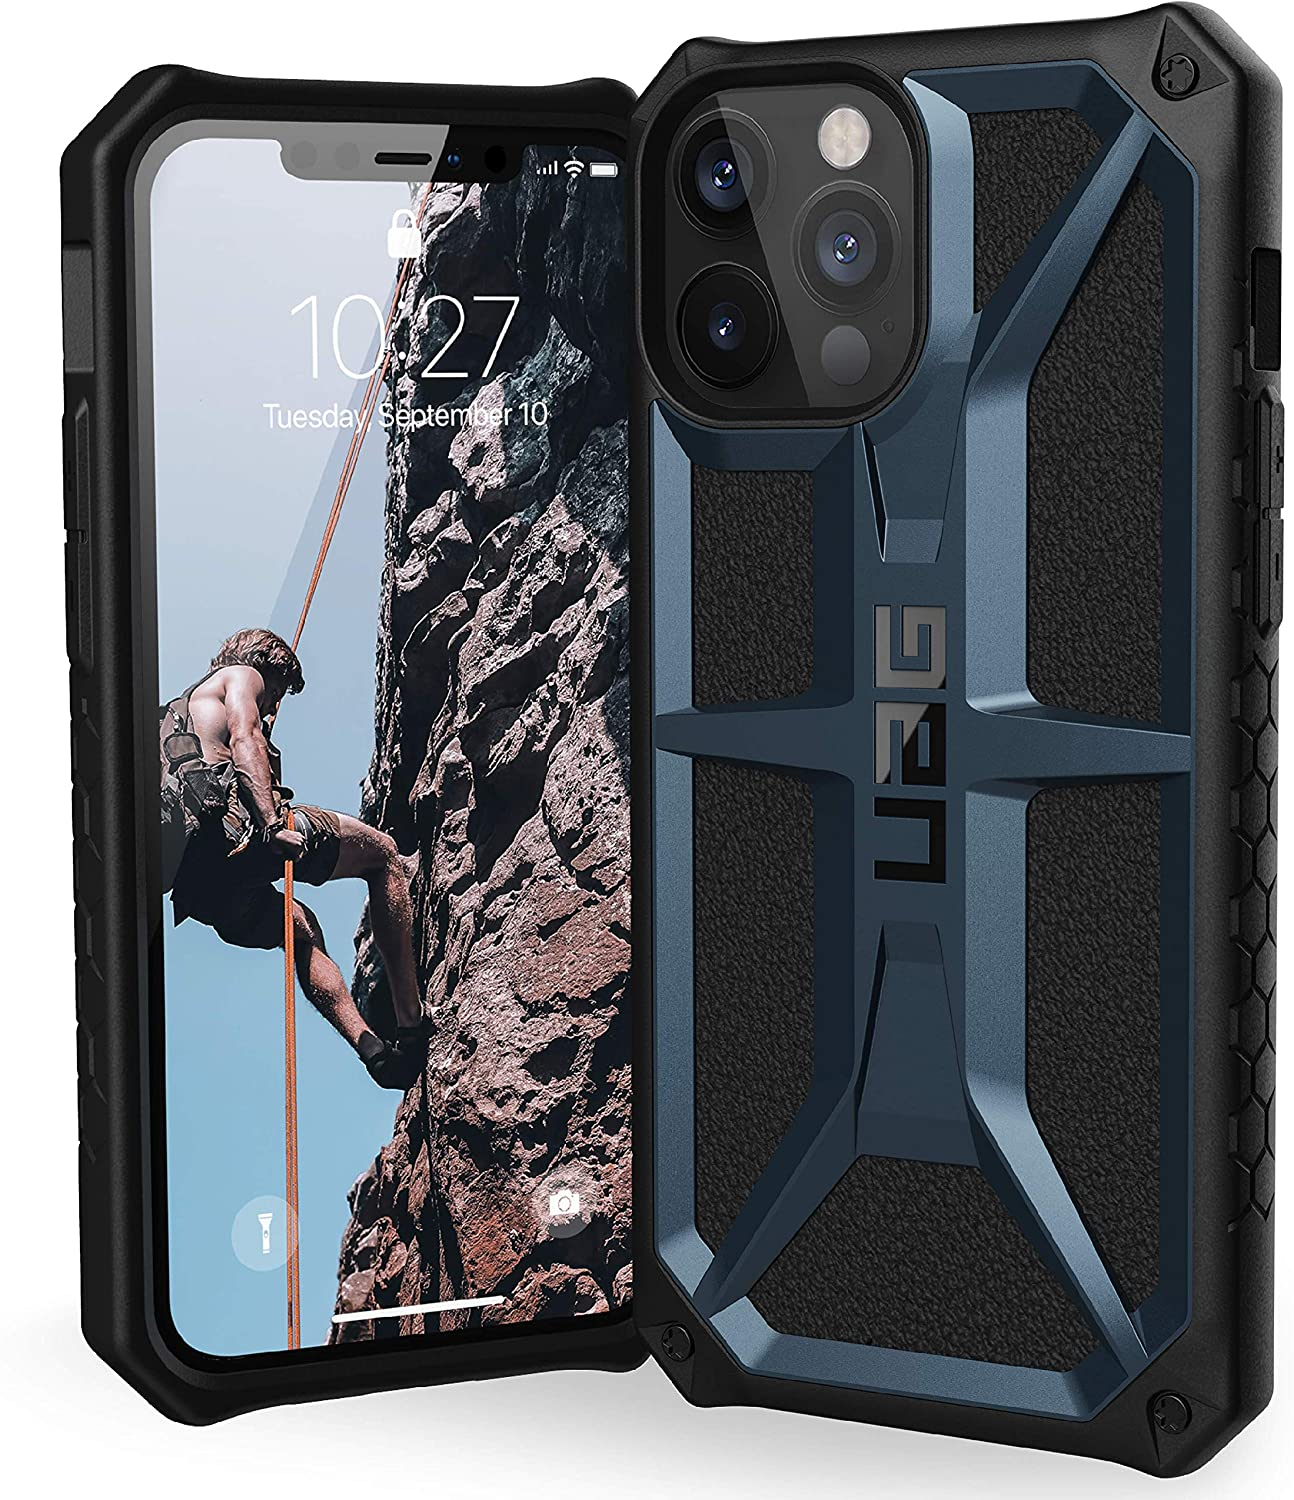 URBAN ARMOR Rugged Lightweight Slim Shockproof Premium Monarch